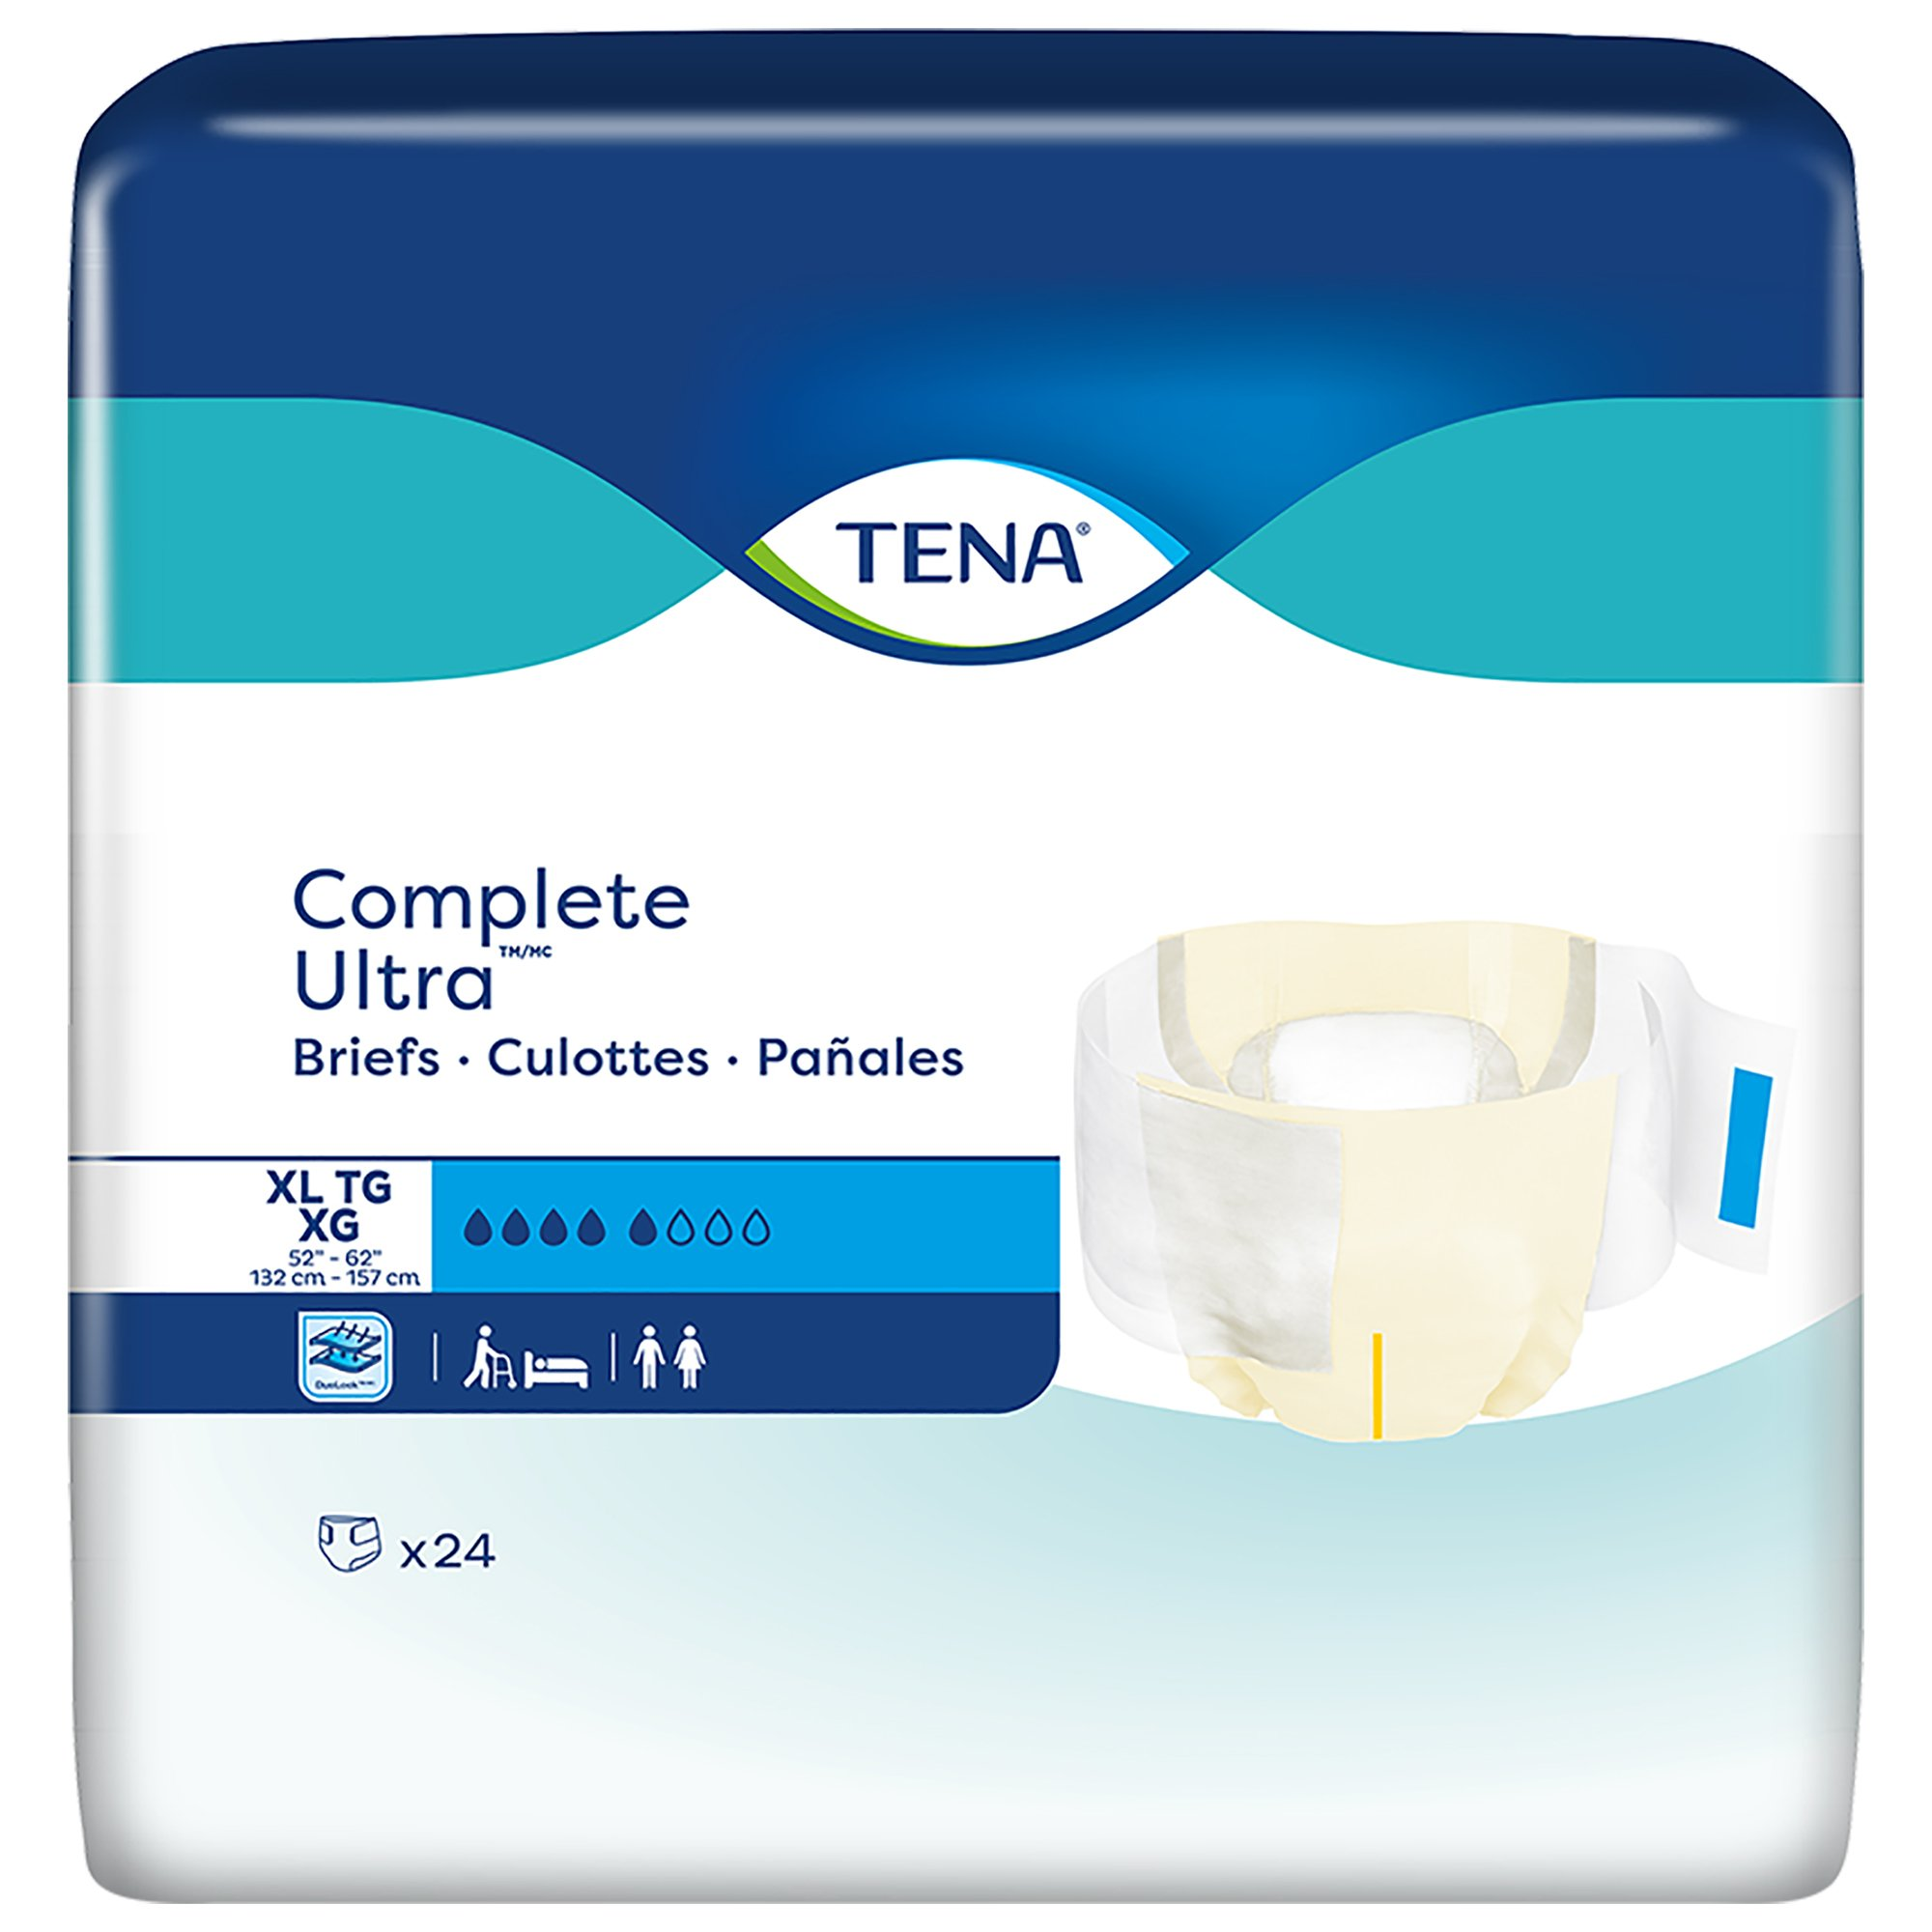 """TENA Complete Ultra Unisex Adult Disposable Diaper, Moderate Absorbency, 67342, Beige - X-Large (52-62"""") - Case of 72 Diapers (3 Bags)"""